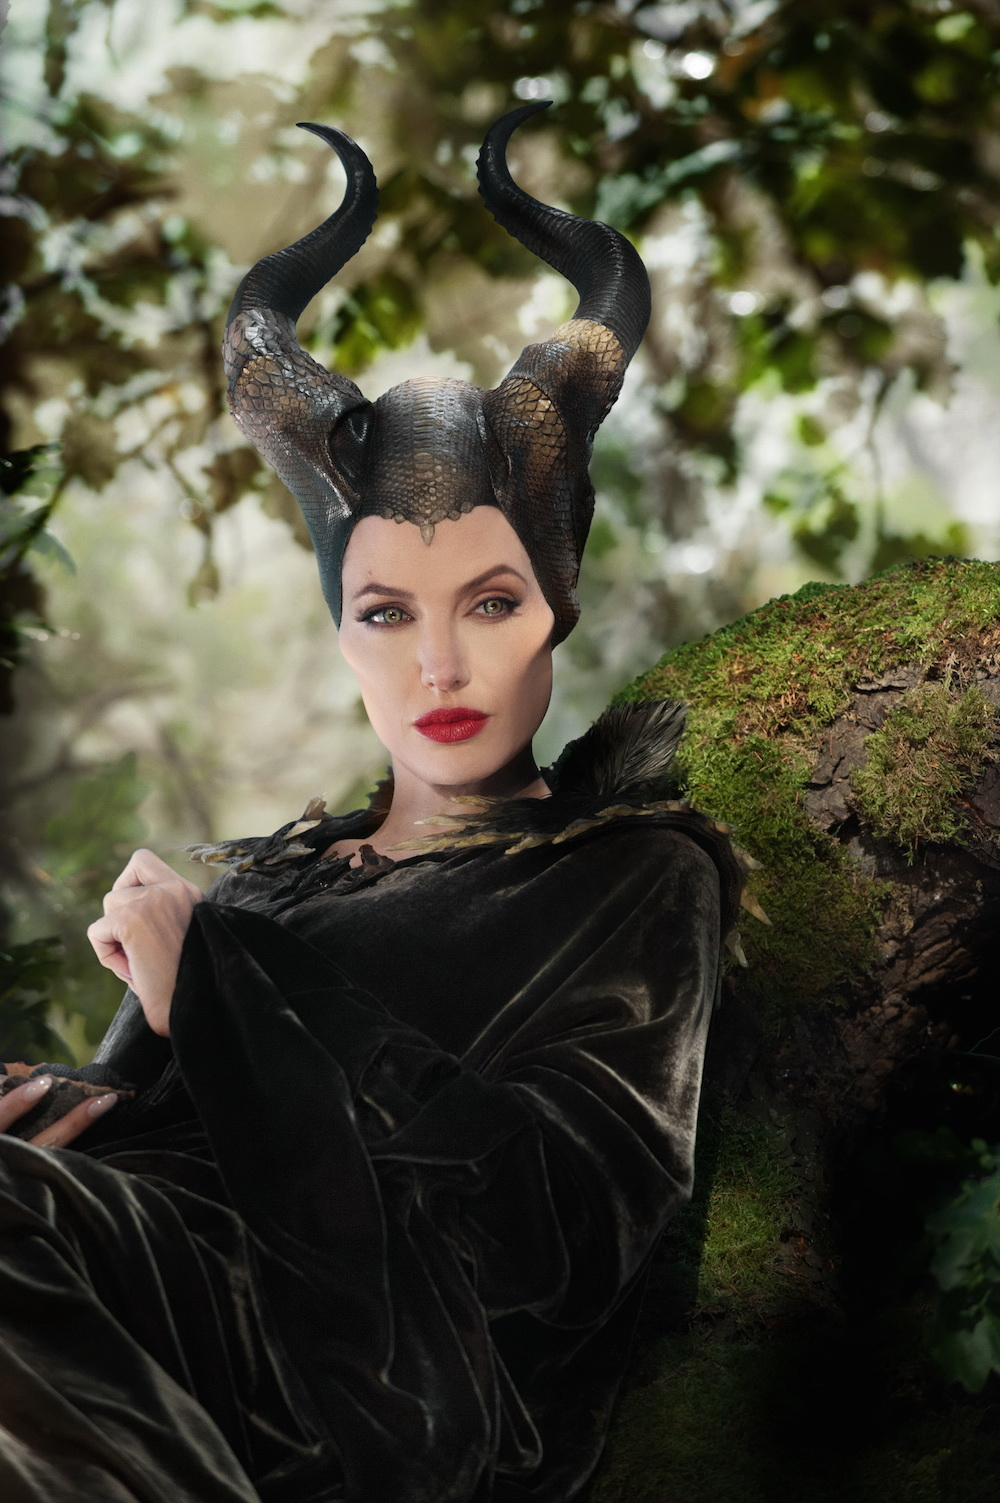 maleficent - photo #11